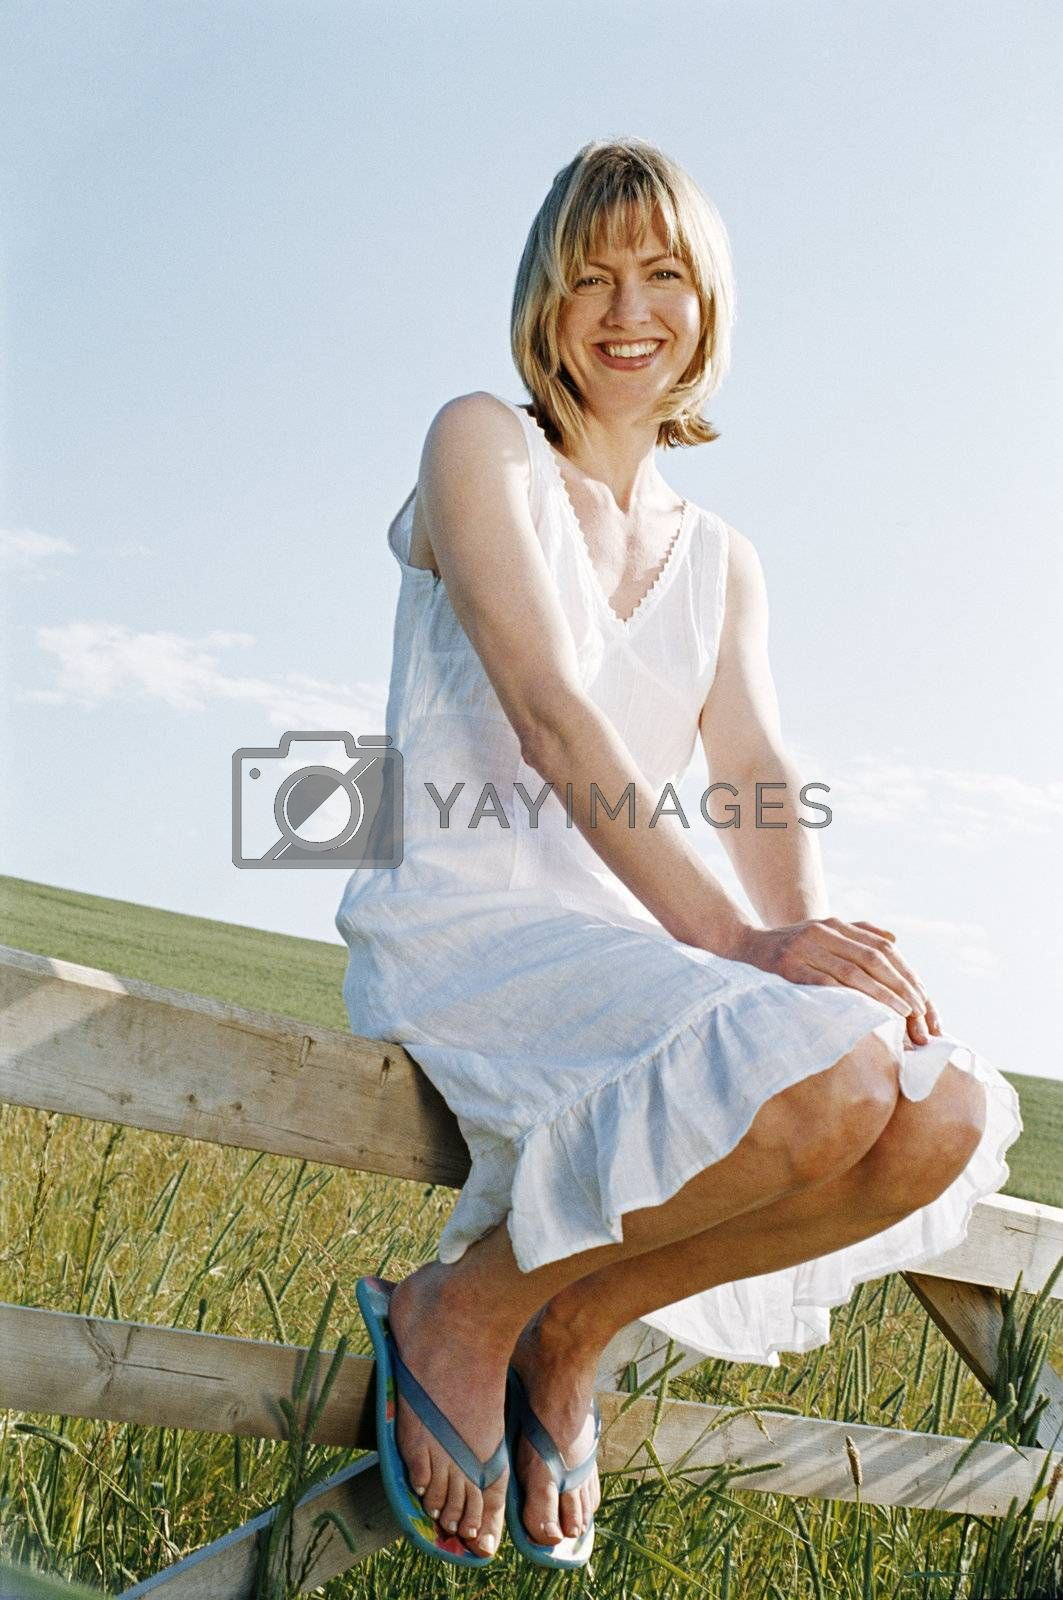 Woman sitting on fence outdoors smiling by MonkeyBusiness